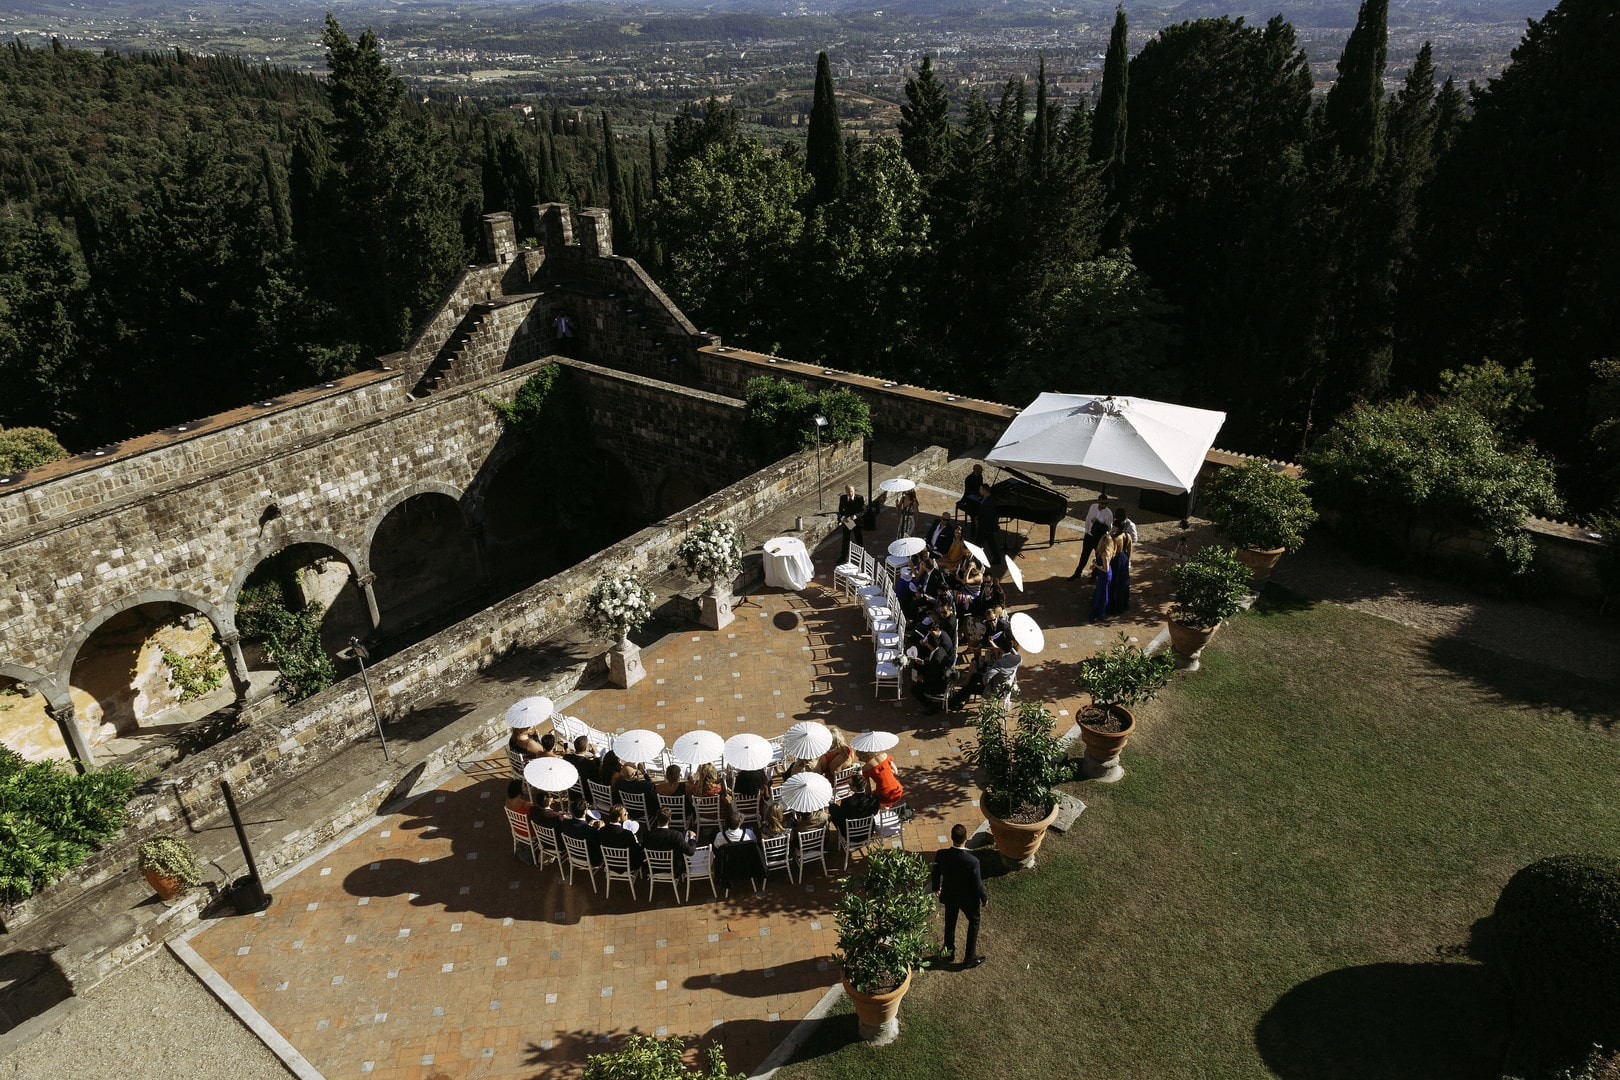 Exquisite Summer Wedding In an Enchanted Tuscan Castle, Photography byAnna Fowler photography, Wedding Planning by Primavera Dreams for Destination Wedding Blog Adriana Weddings